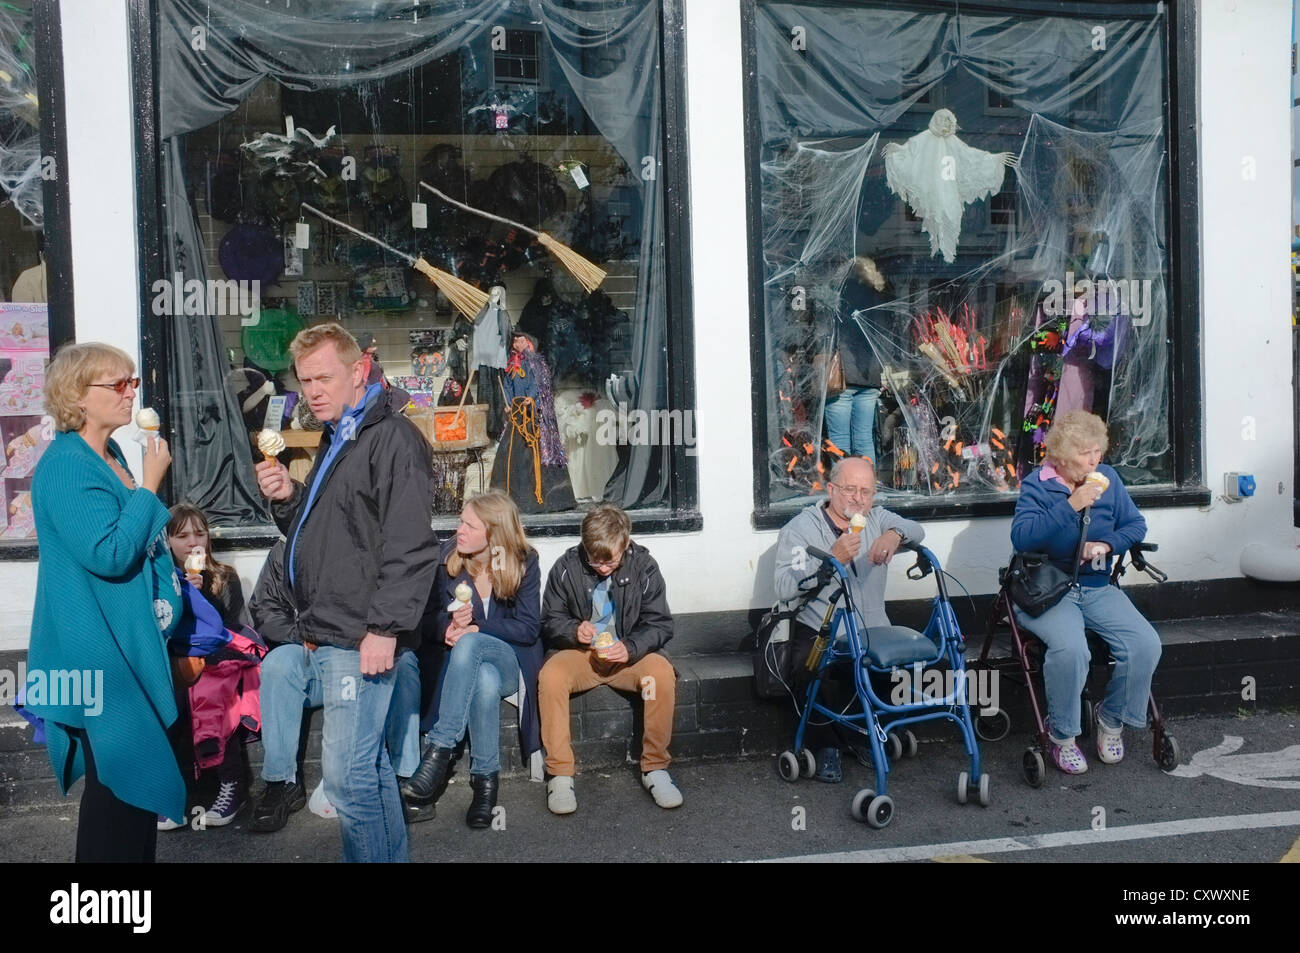 People eating ice creams in Falmouth, Cornwall, UK during unseasonably warm weather in October. Halloween decorations - Stock Image